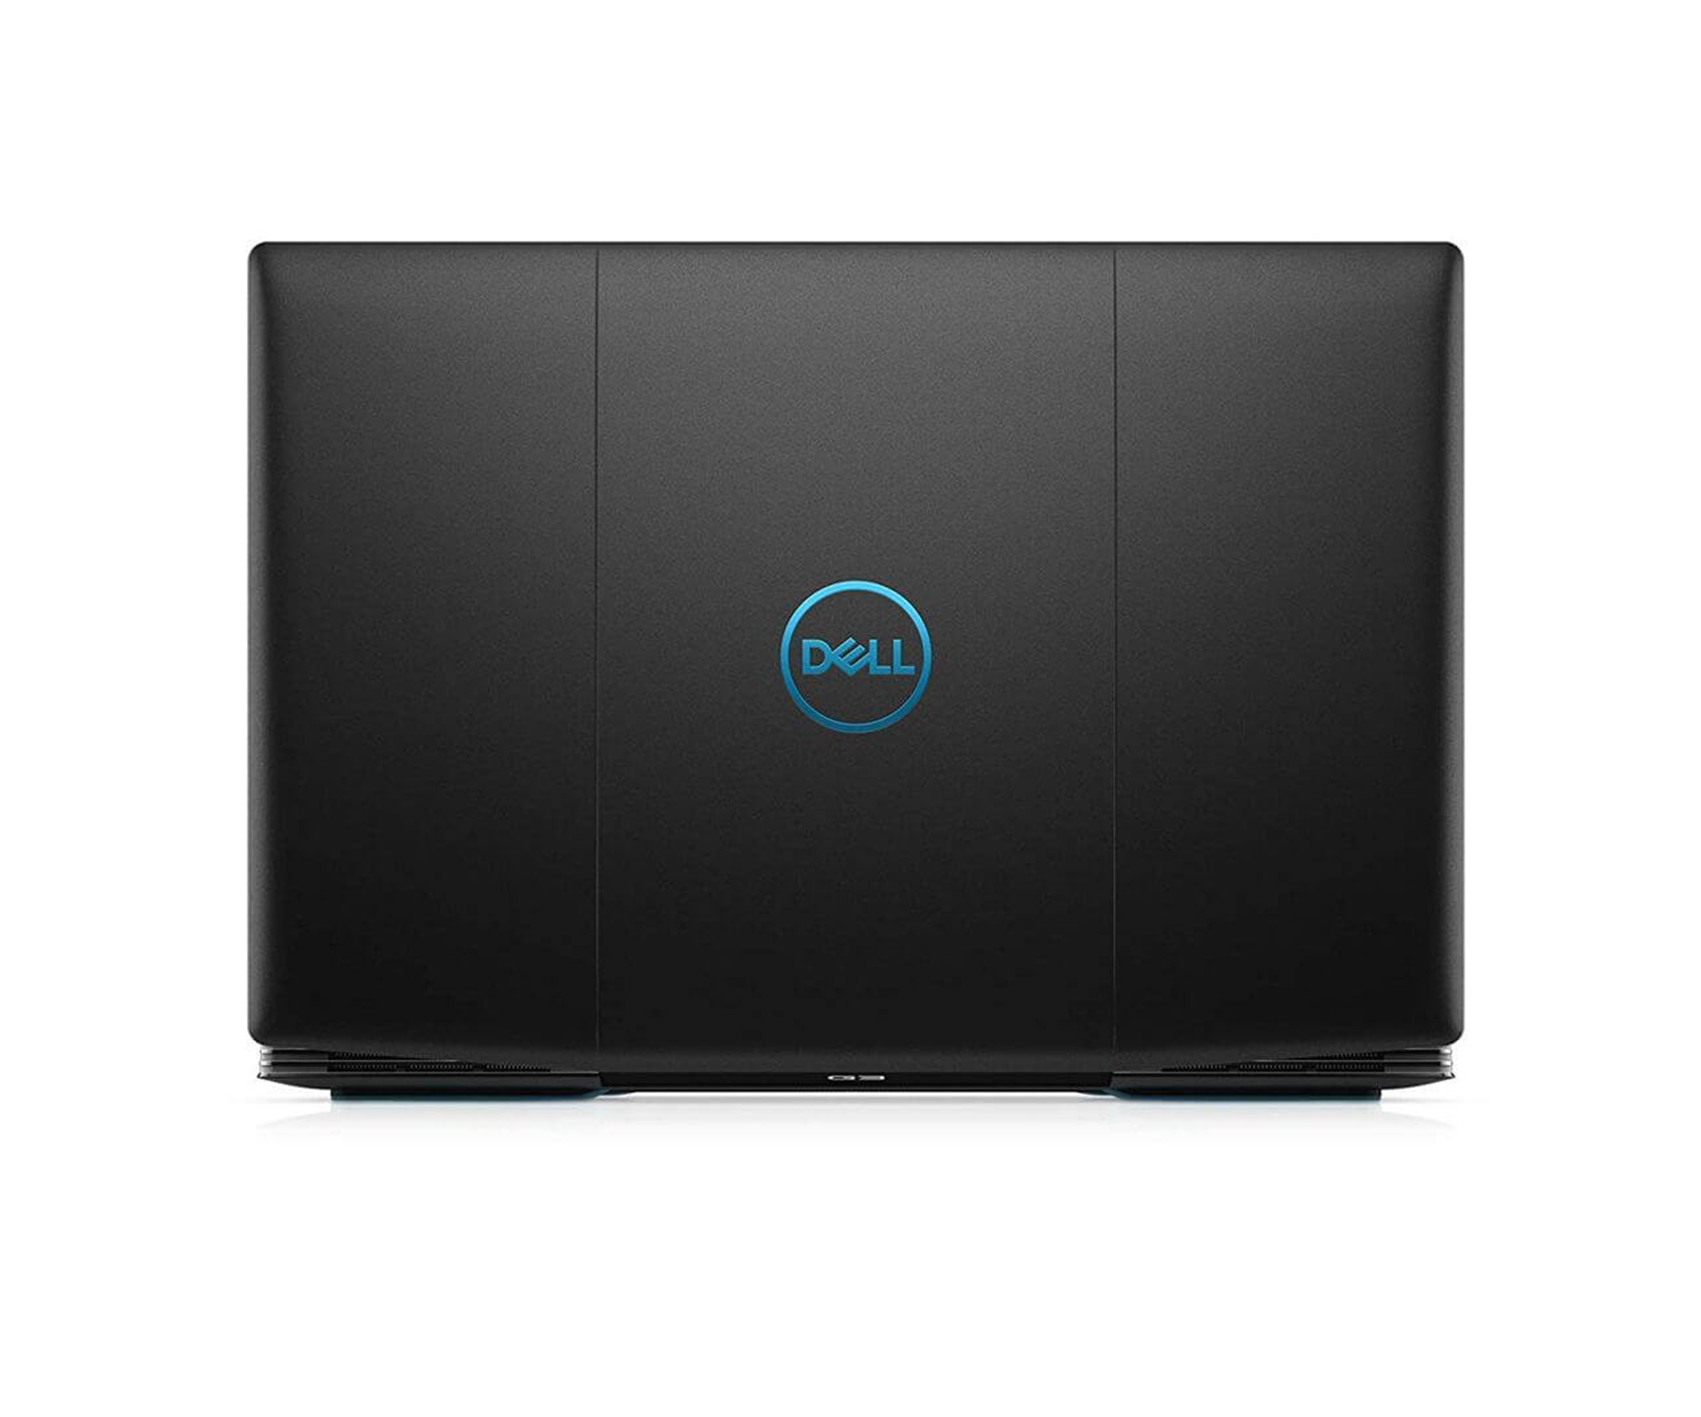 Dell G3 15 Gaming Laptop